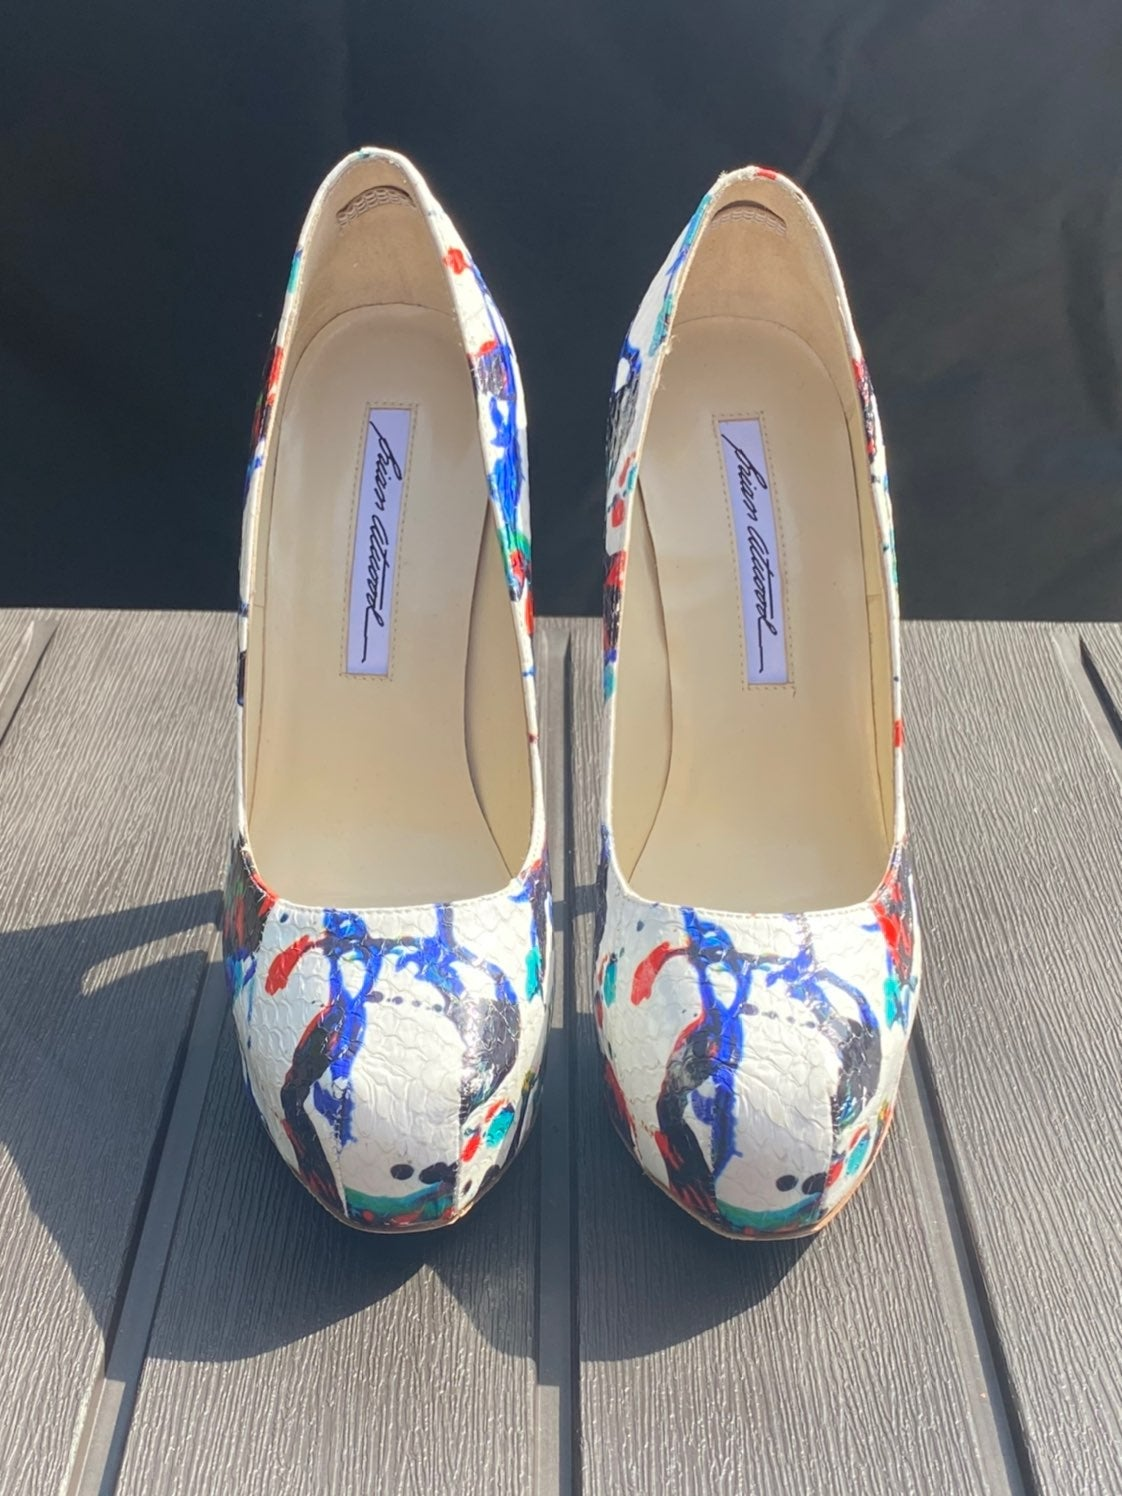 NIB Brian Atwood Multi Color Heel Shoe